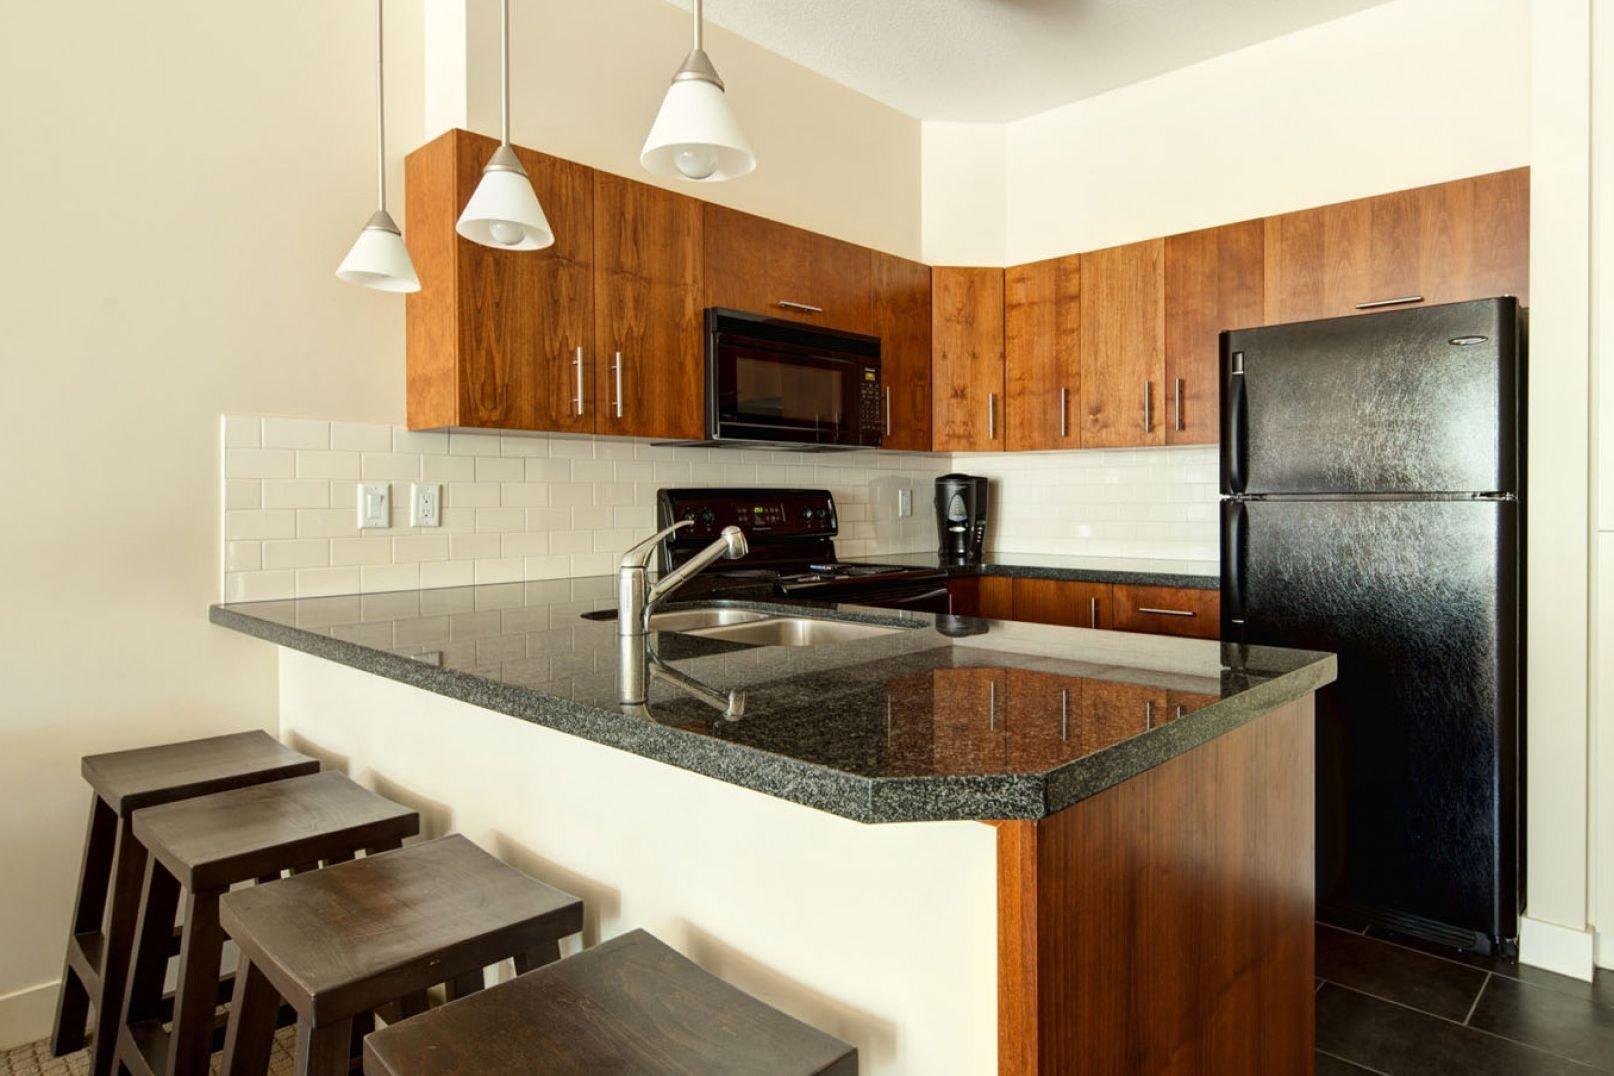 Panorama Mountain Village - lookout townhomes kitchen.jpg